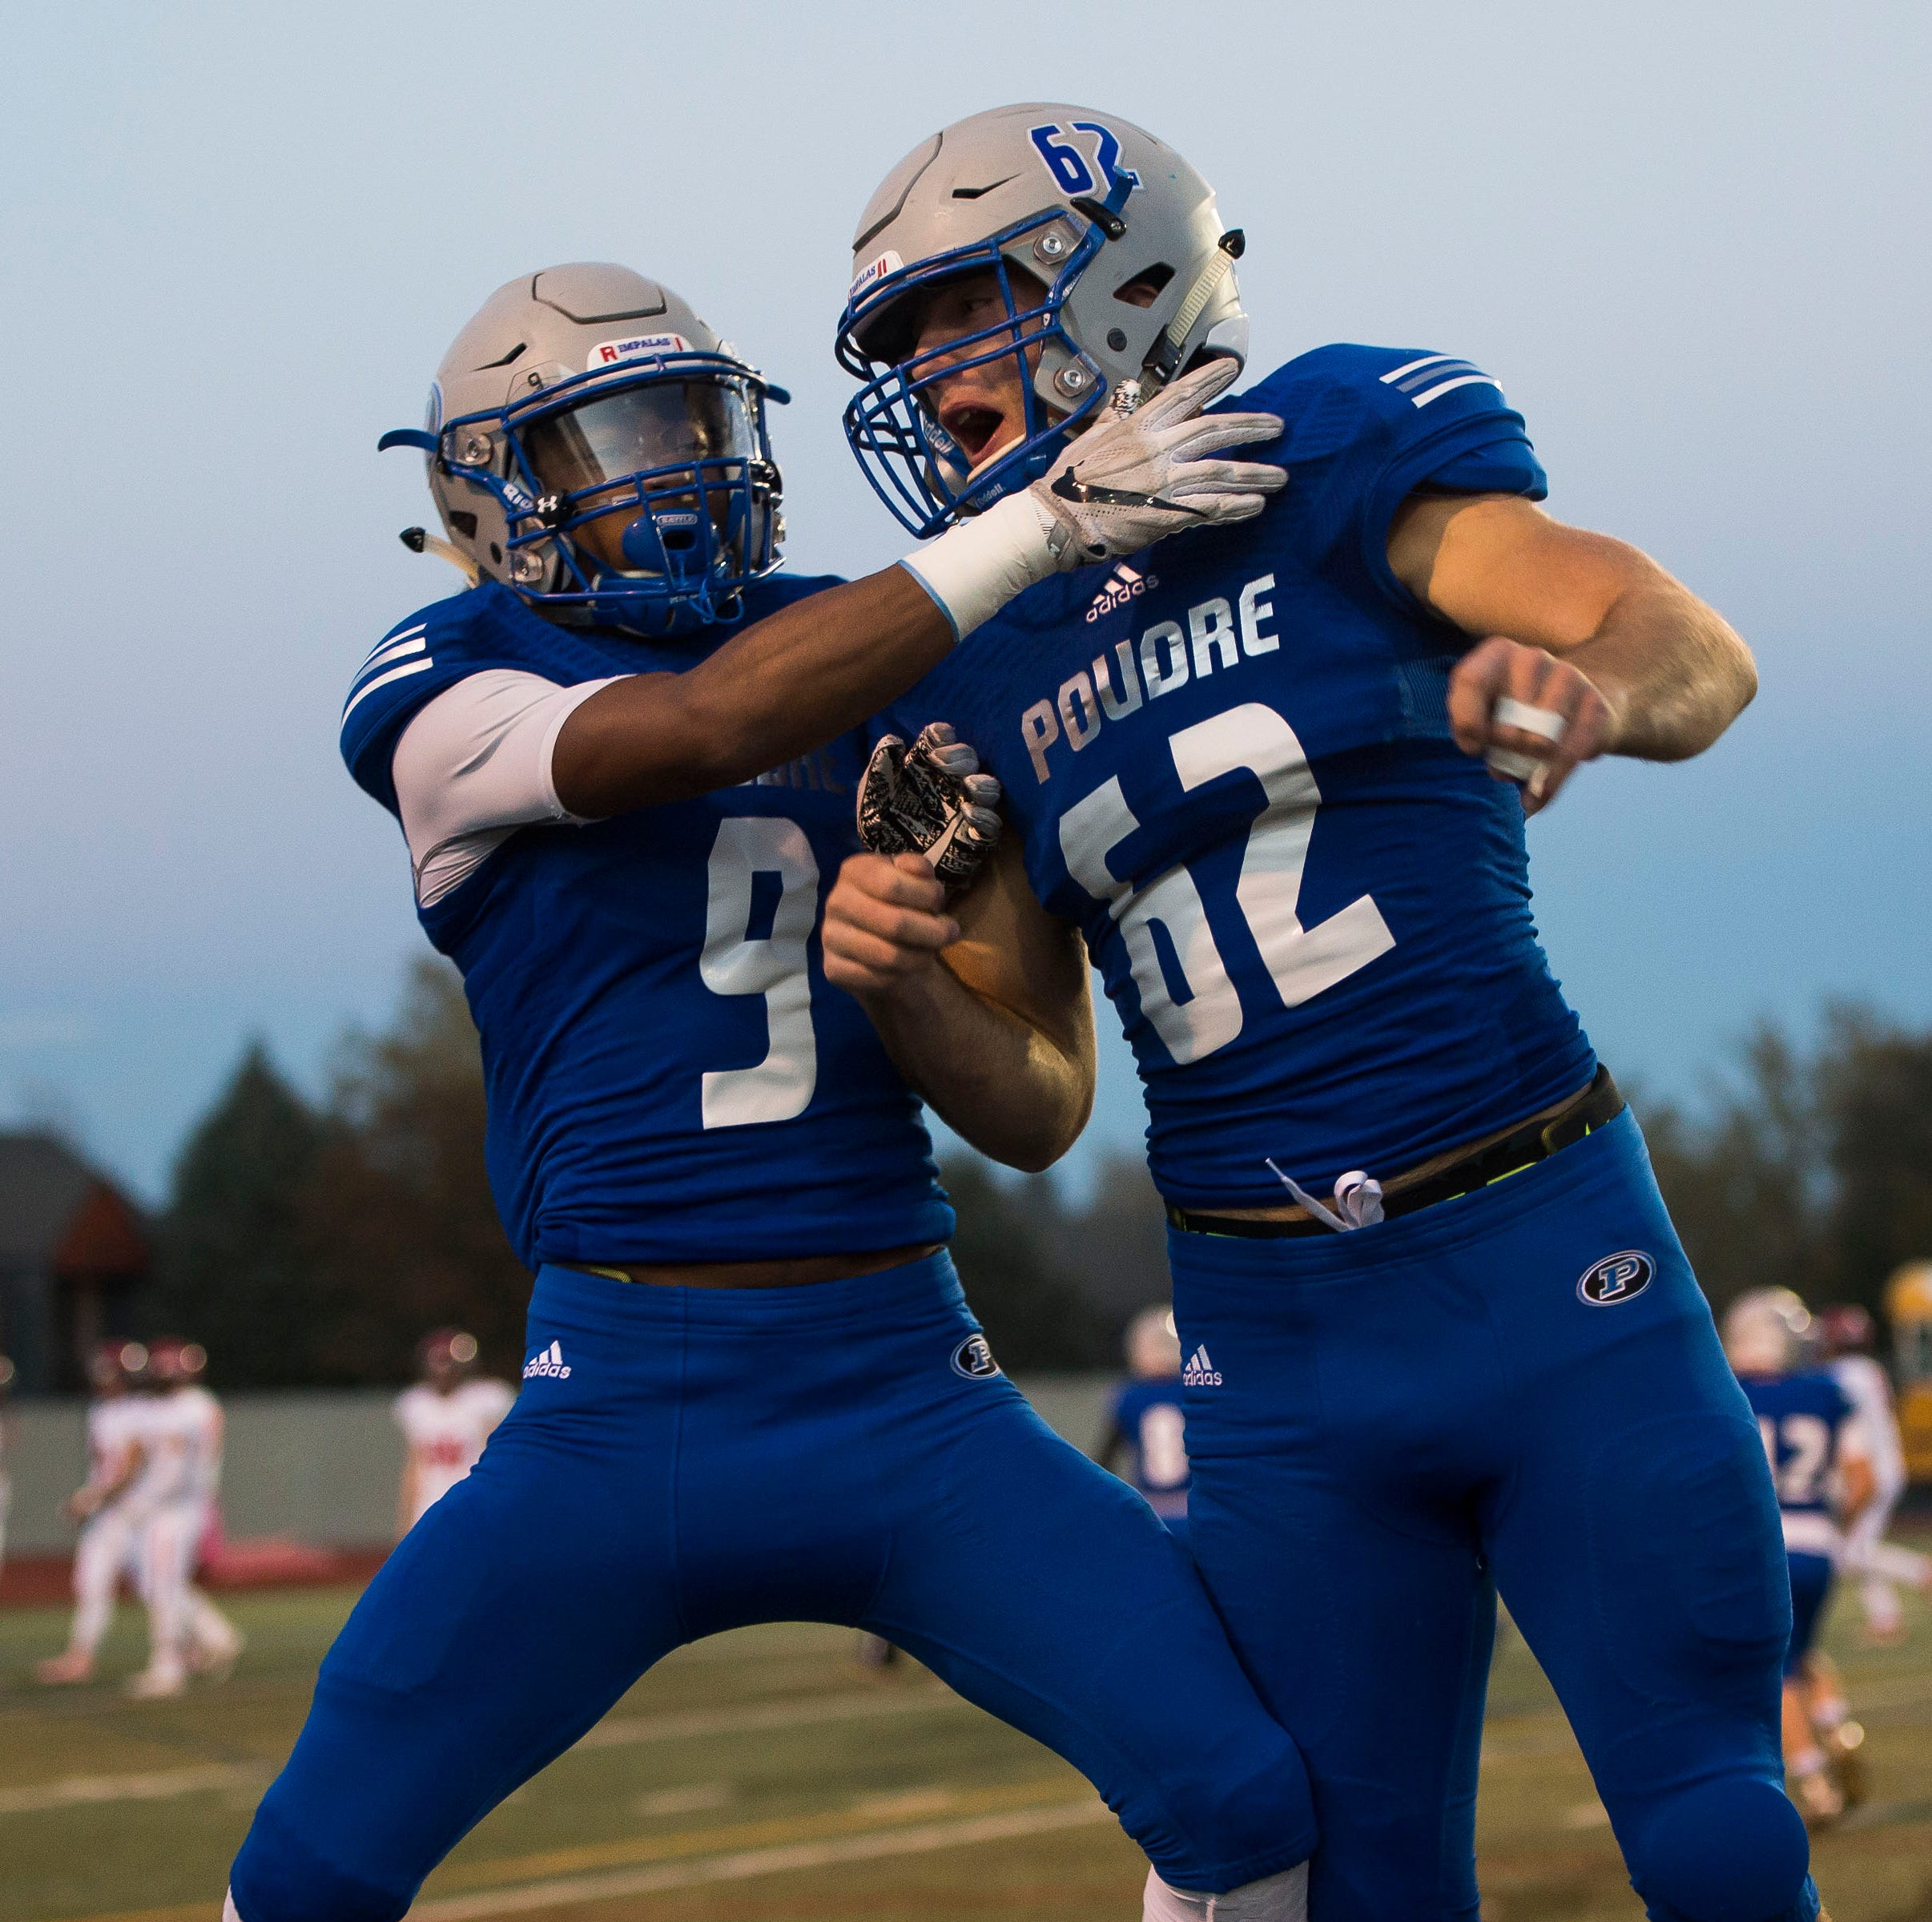 Poudre, Fossil Ridge football teams drop games, sets up key matchup next week